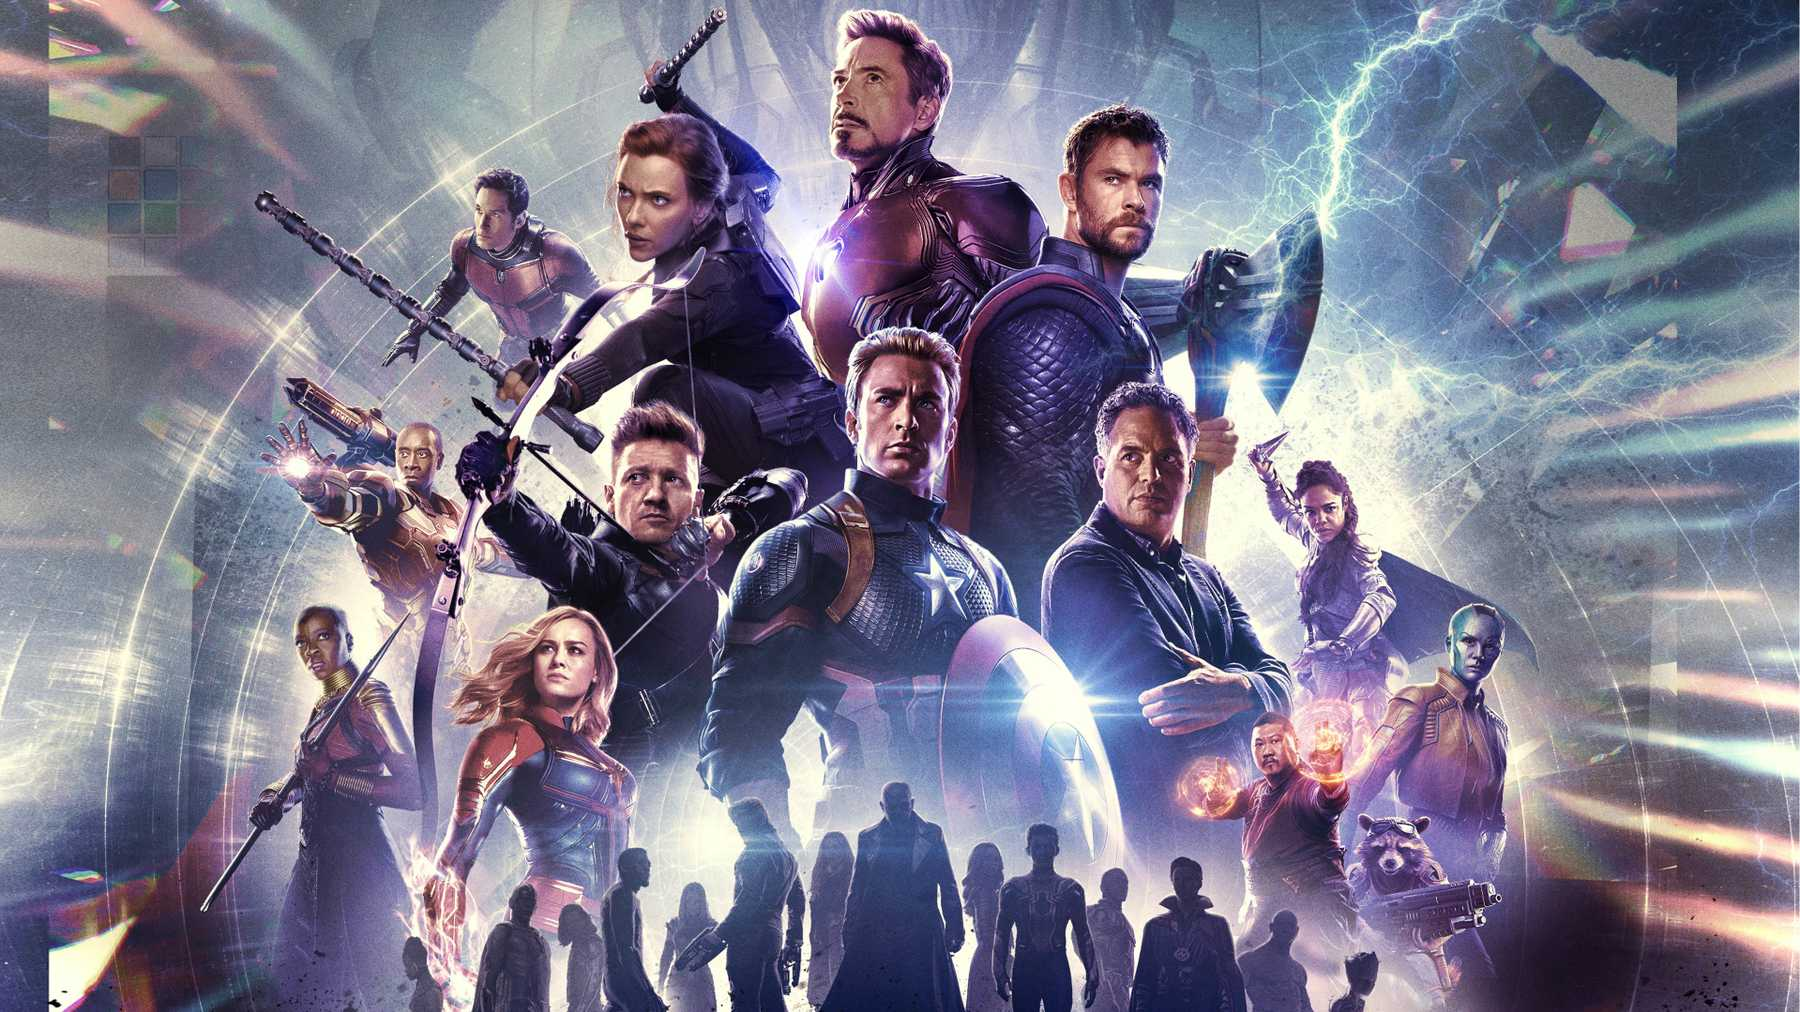 Avengers: Endgame News & Review | Movies - Empire